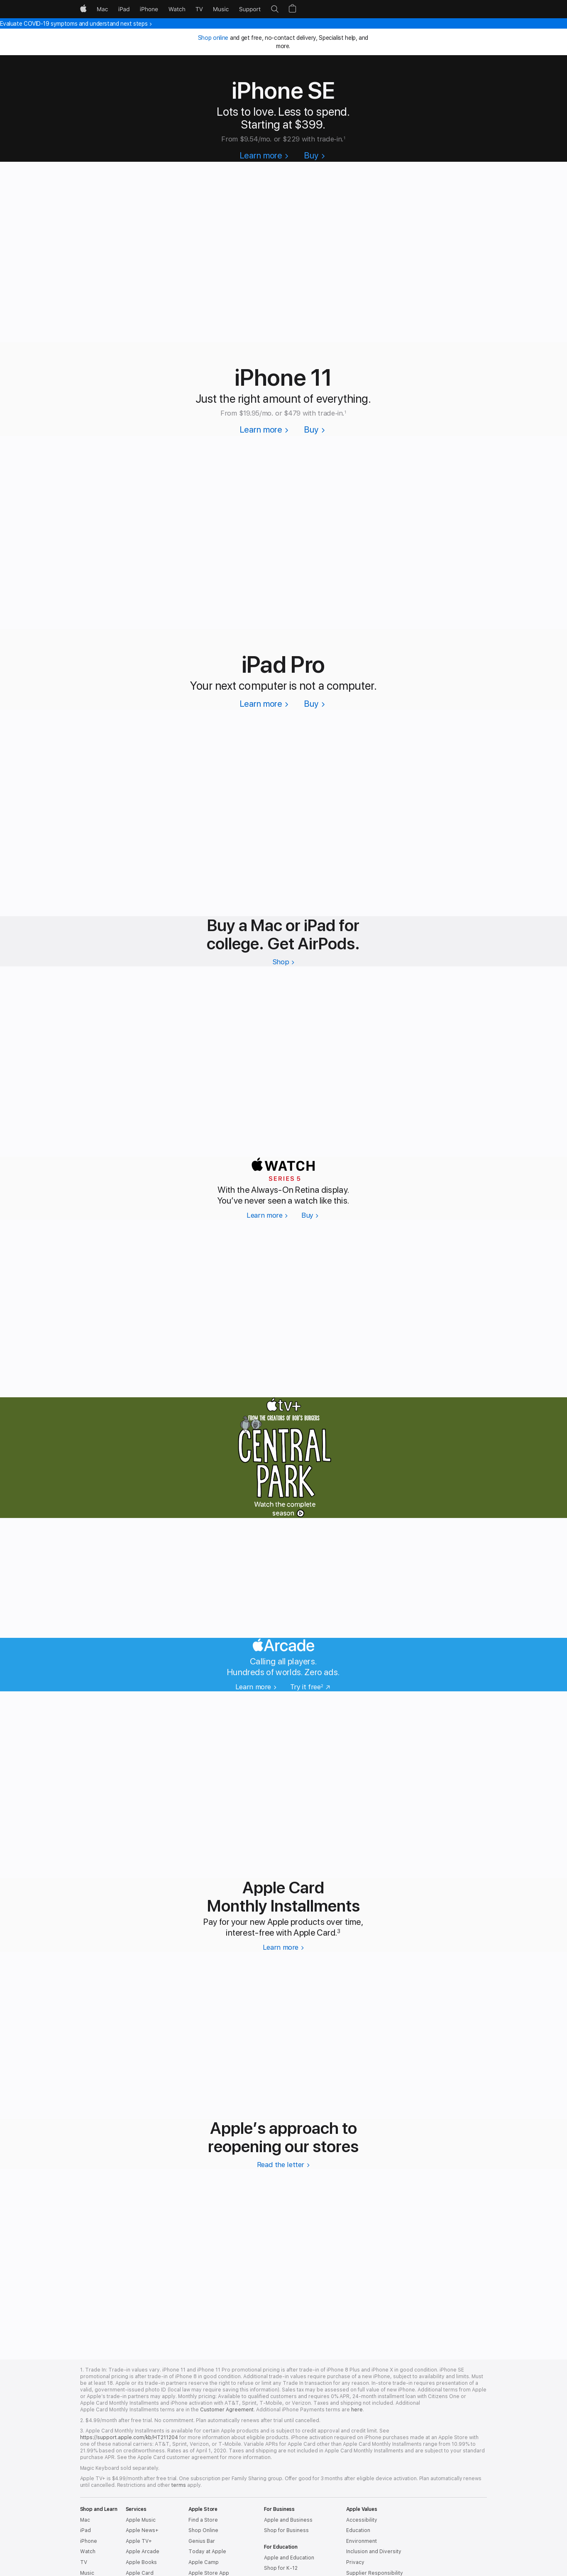 Apple Inc. Website Screenshot